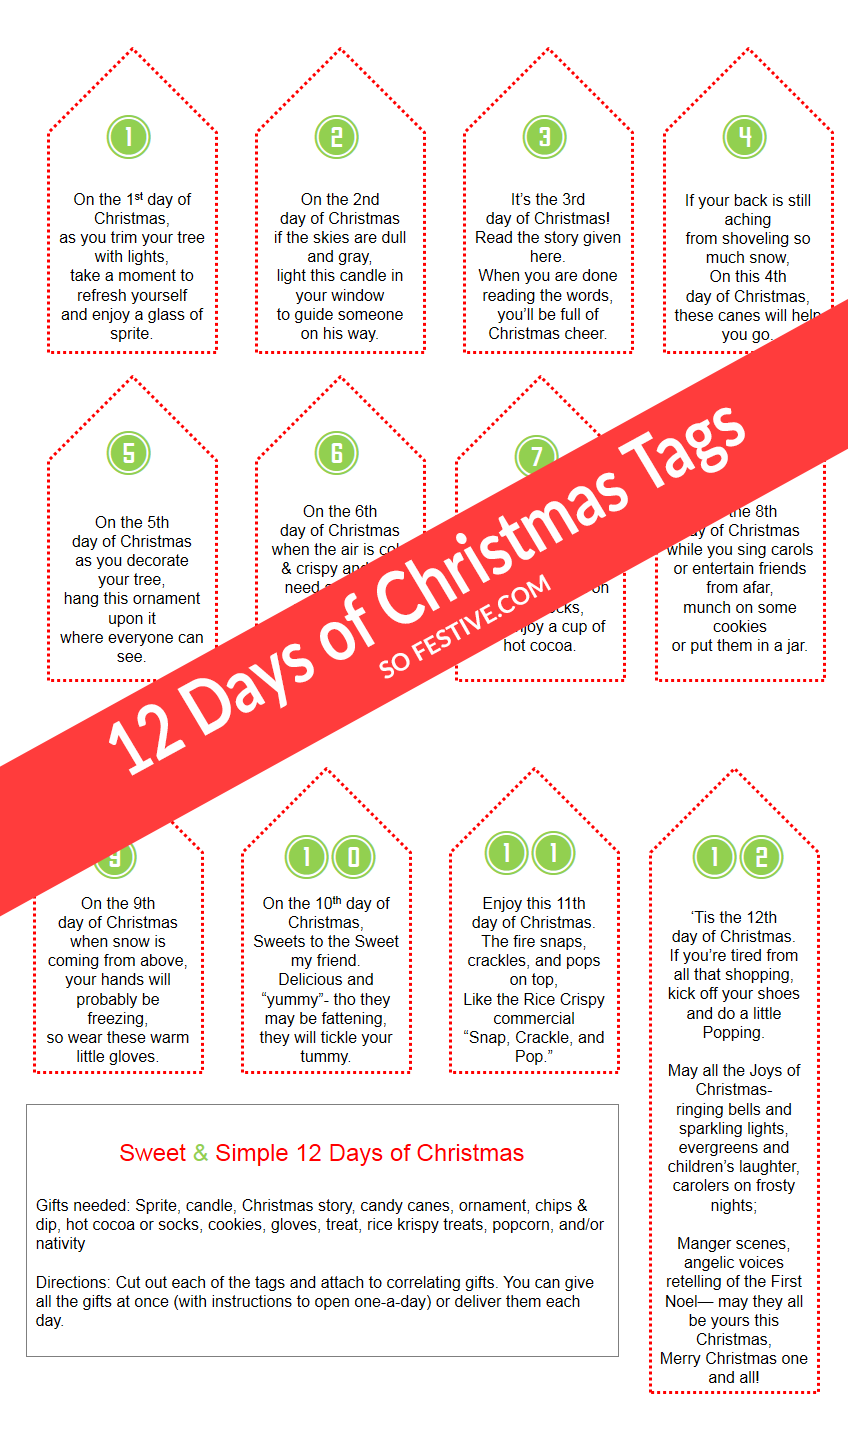 image relating to 12 Days of Christmas Printable referred to as Adorable Very simple 12 Times of Xmas + Printables ☼ Relatives